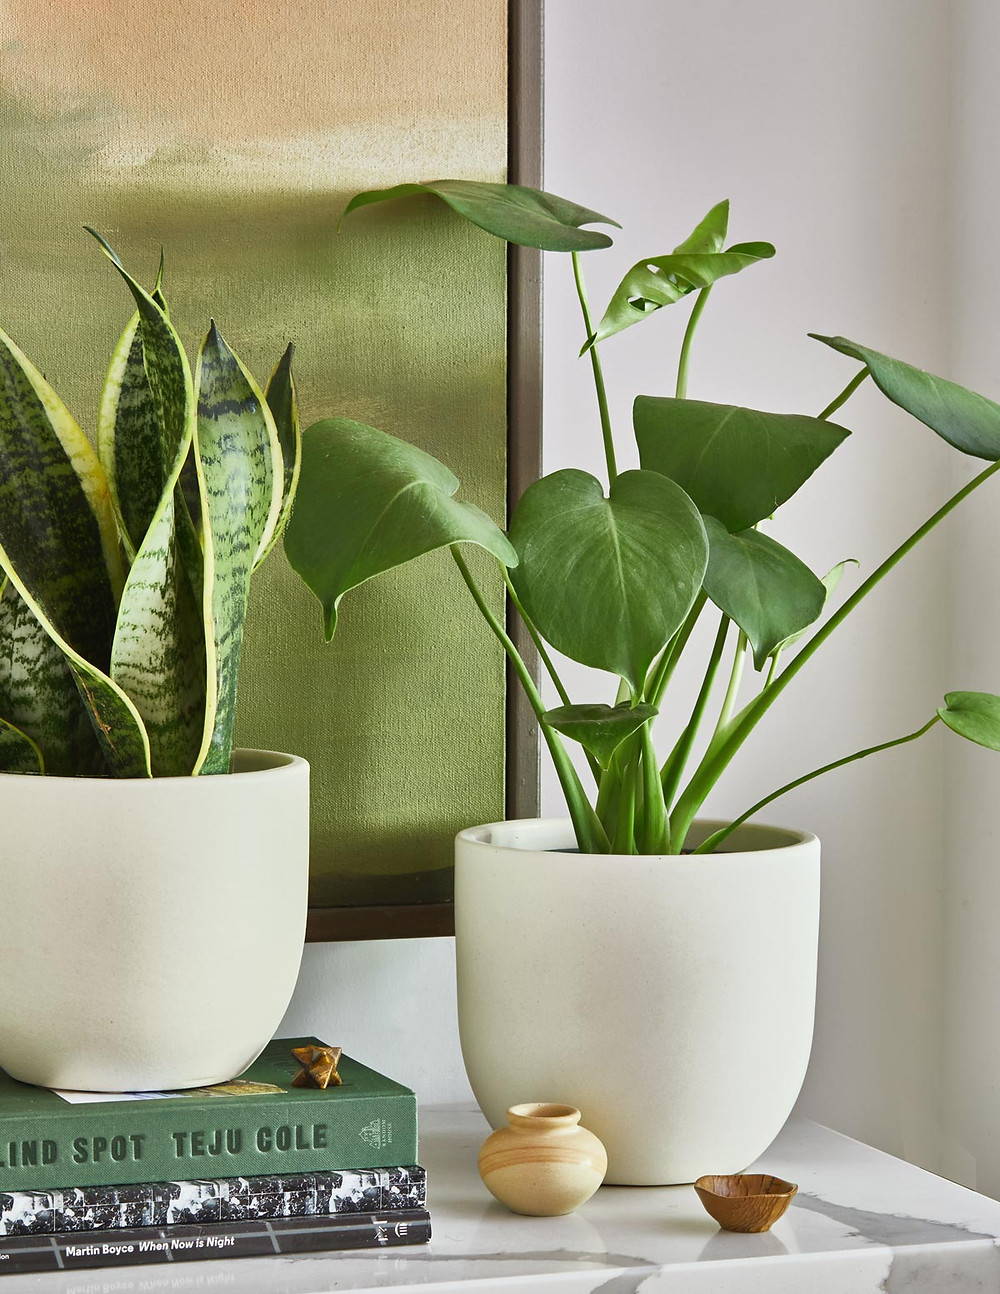 Two green plants in white planters